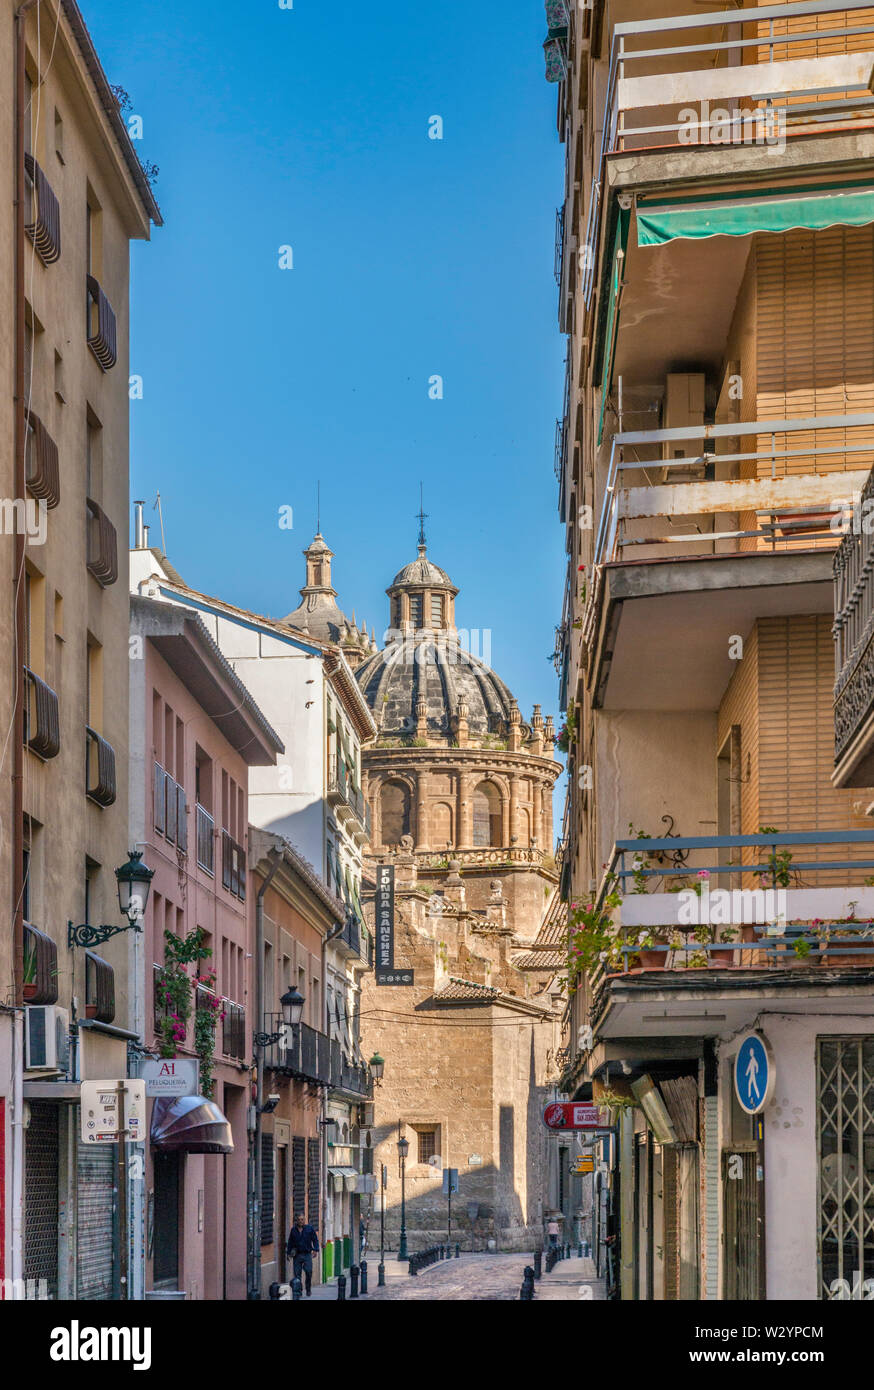 Iglesia de Santos Justo y Pastor, 16th century church at Plaza de la Universidad, view from Calle San Jeronimo in Granada, Andalusia, Spain - Stock Image